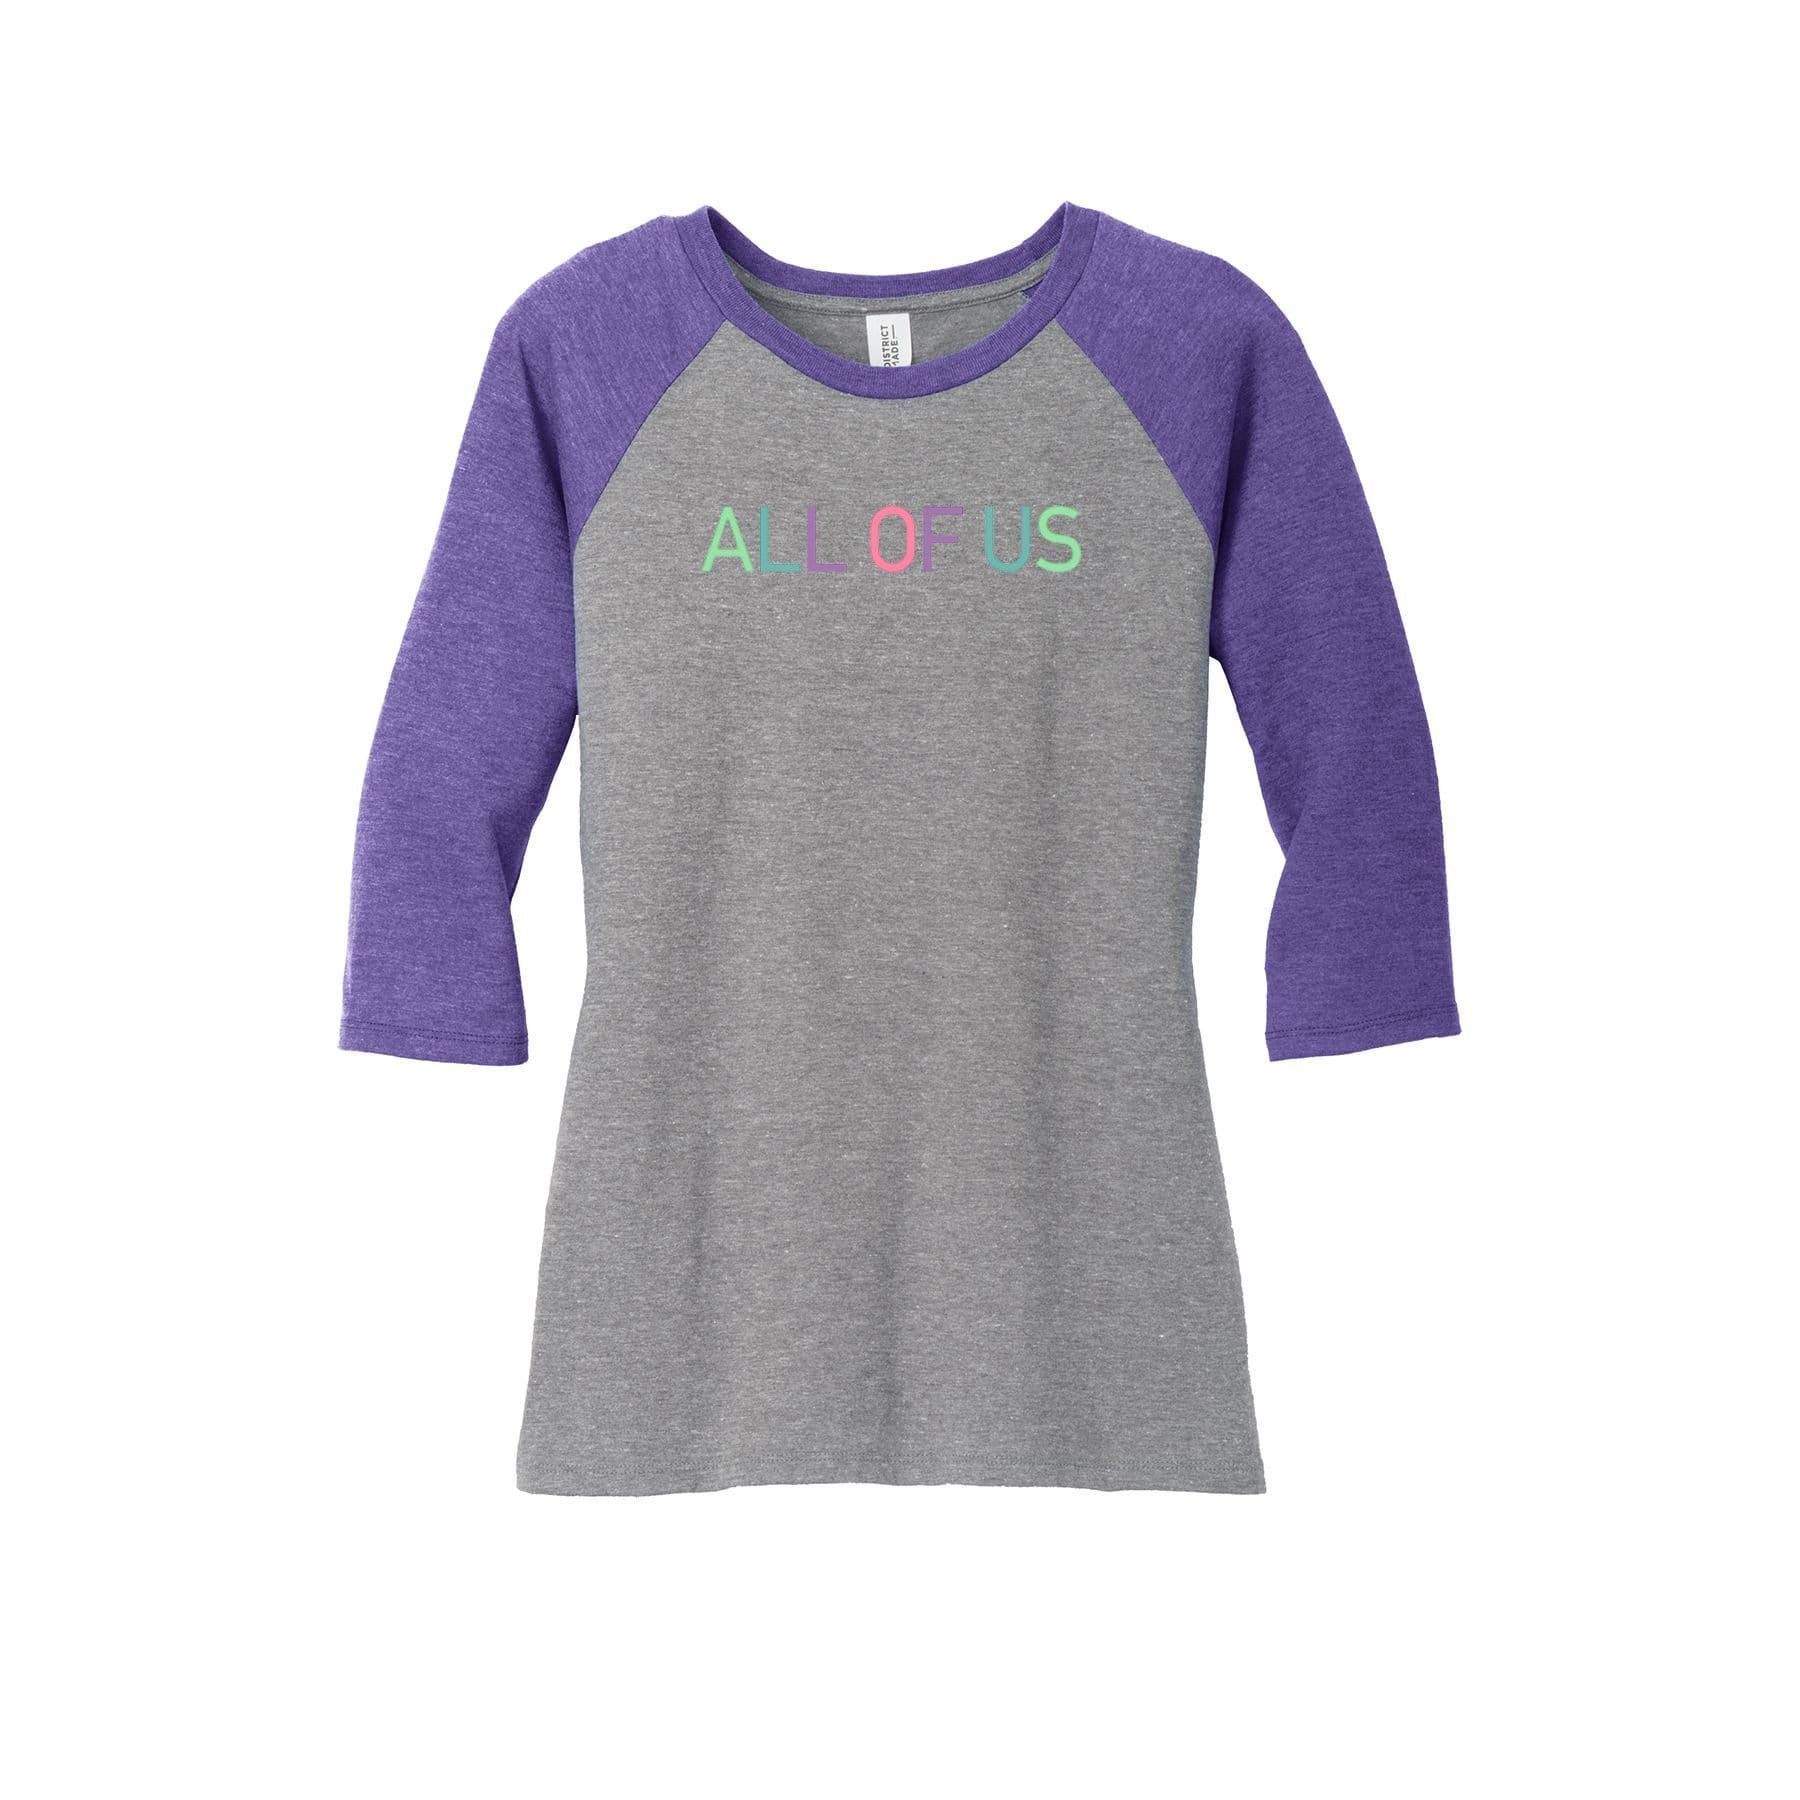 70a2a1ec33a Womens All of Us Purple Frost/Grey Frost Tri-Blend 3/4-Sleeve Raglan T-shirt